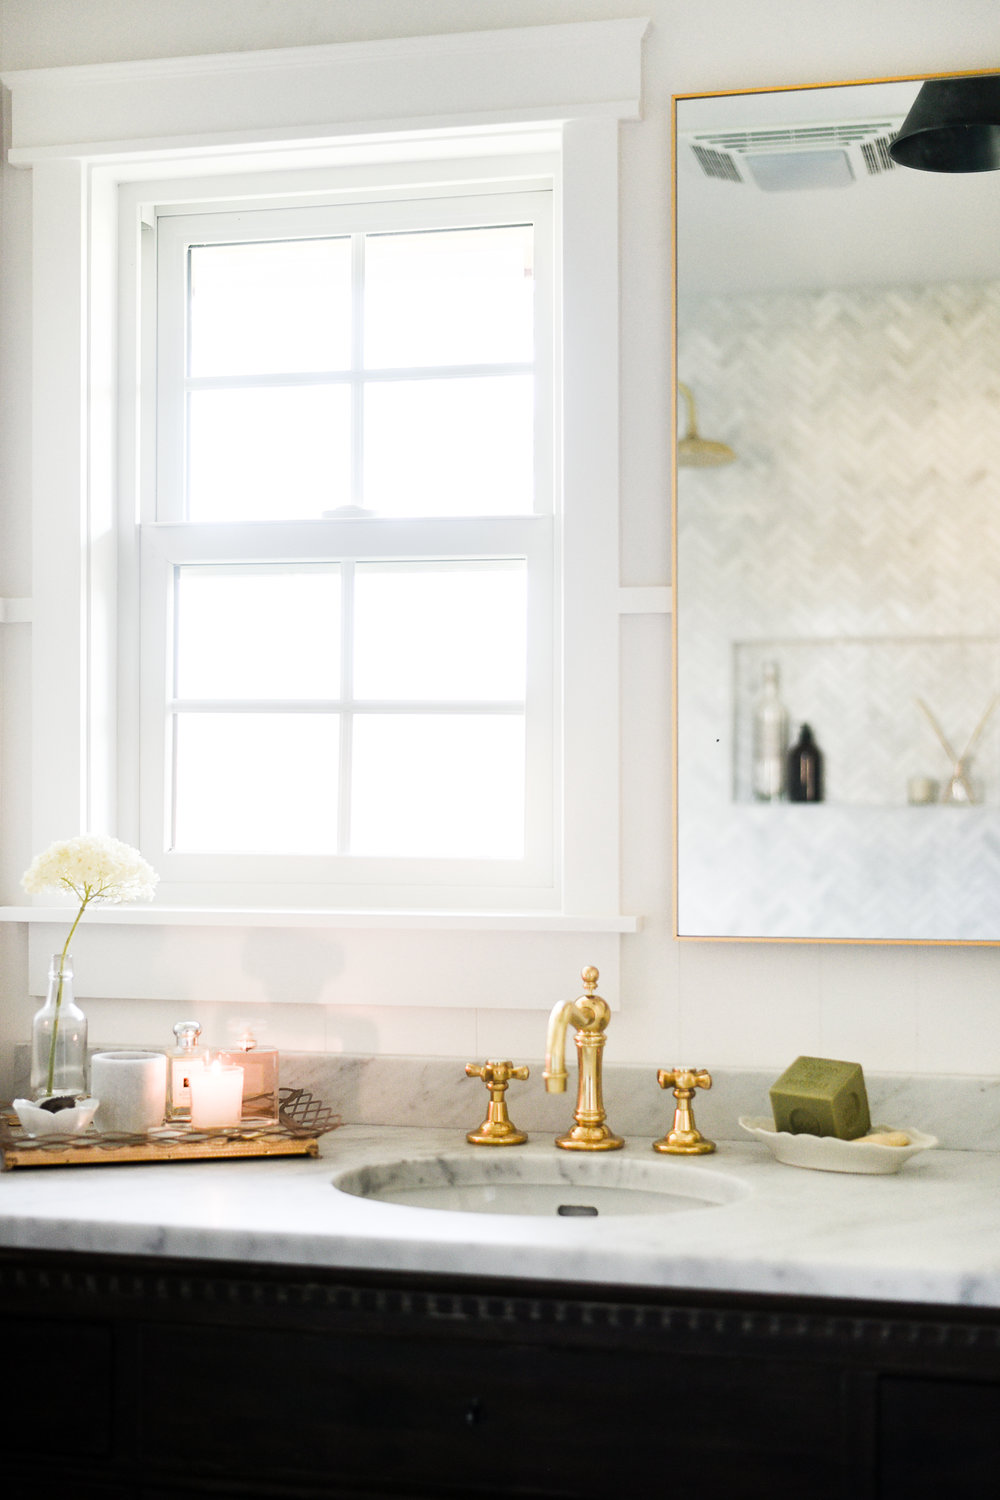 Antique Brass Hardware in White Marble Bathroom | boxwoodavenue.com